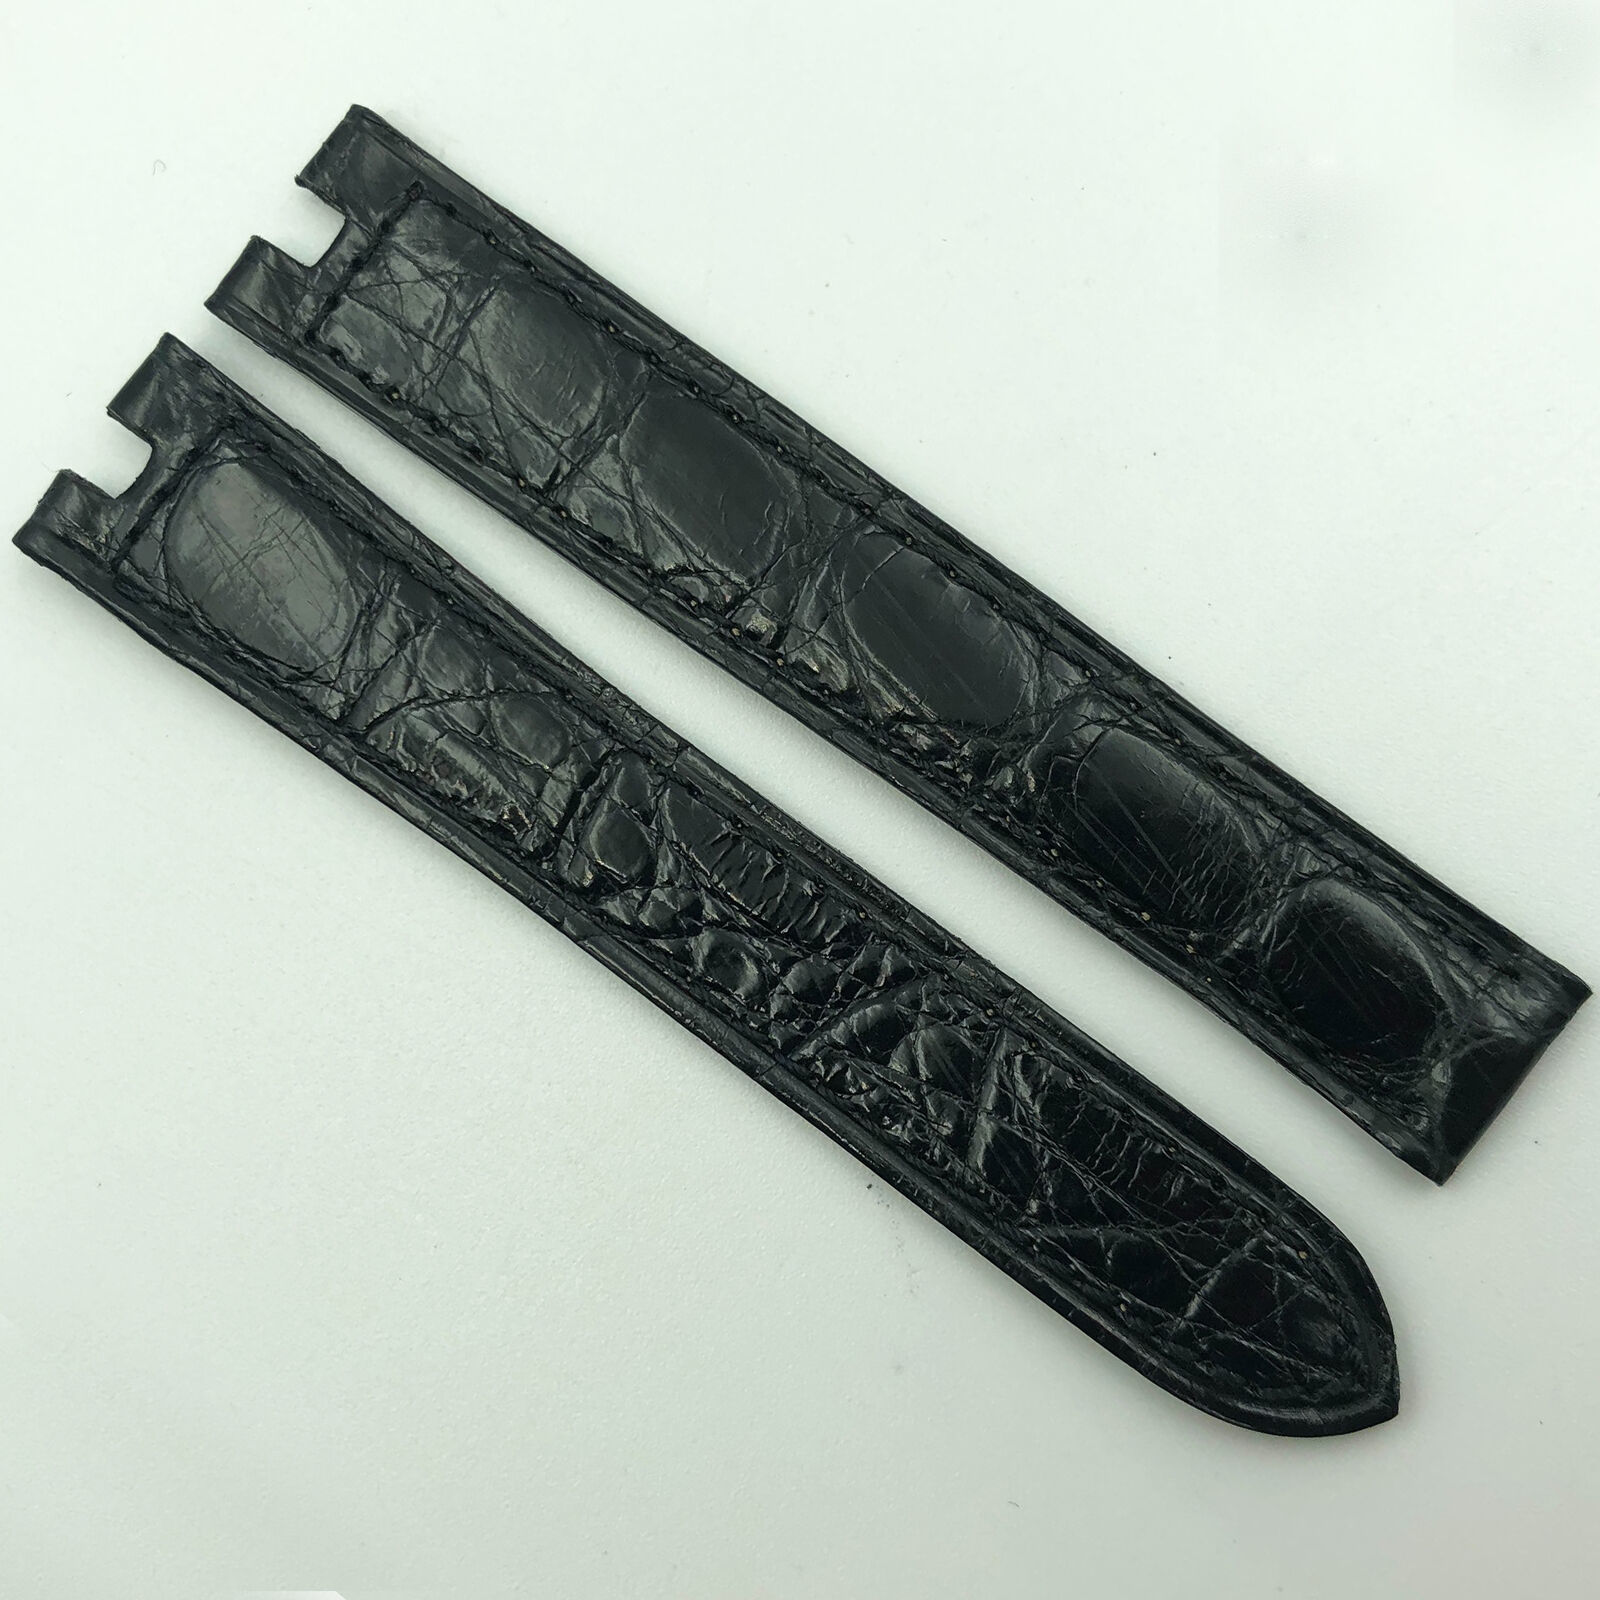 Authentic Cartier 14mm Black Leather for Deployant Clasp 7FN CAC01 - $199.00